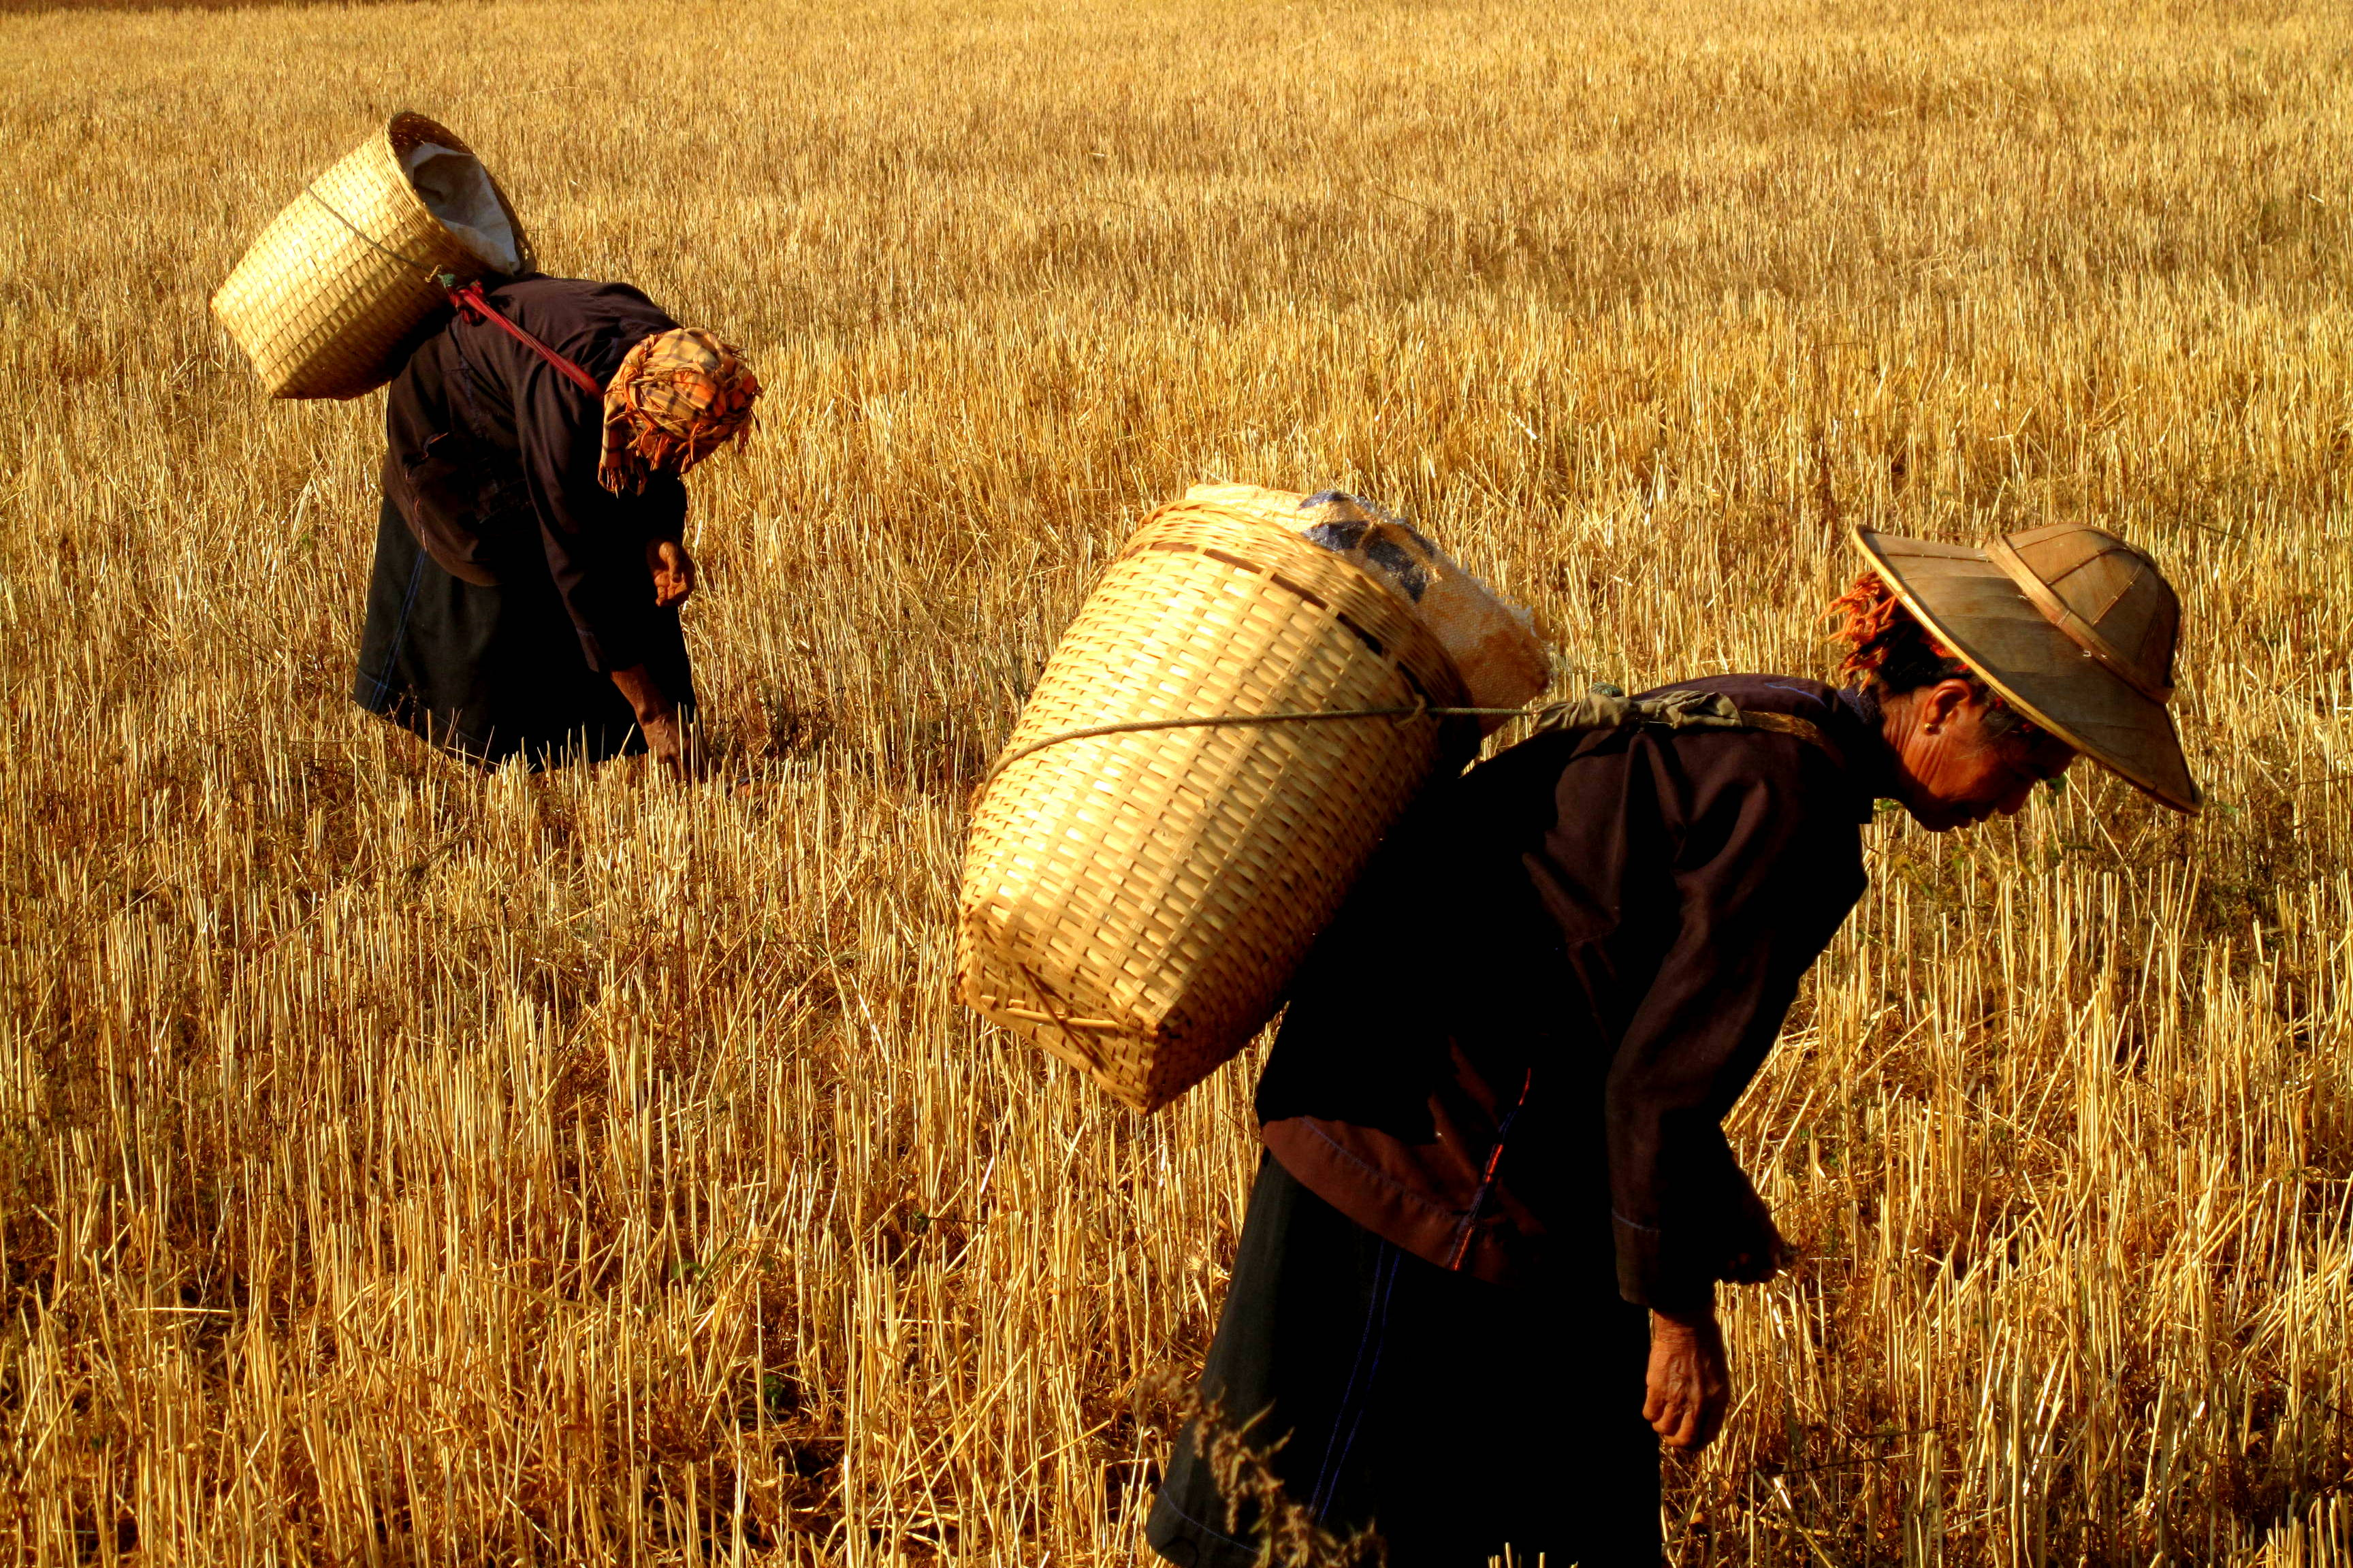 Working the Wheatfields, Burma